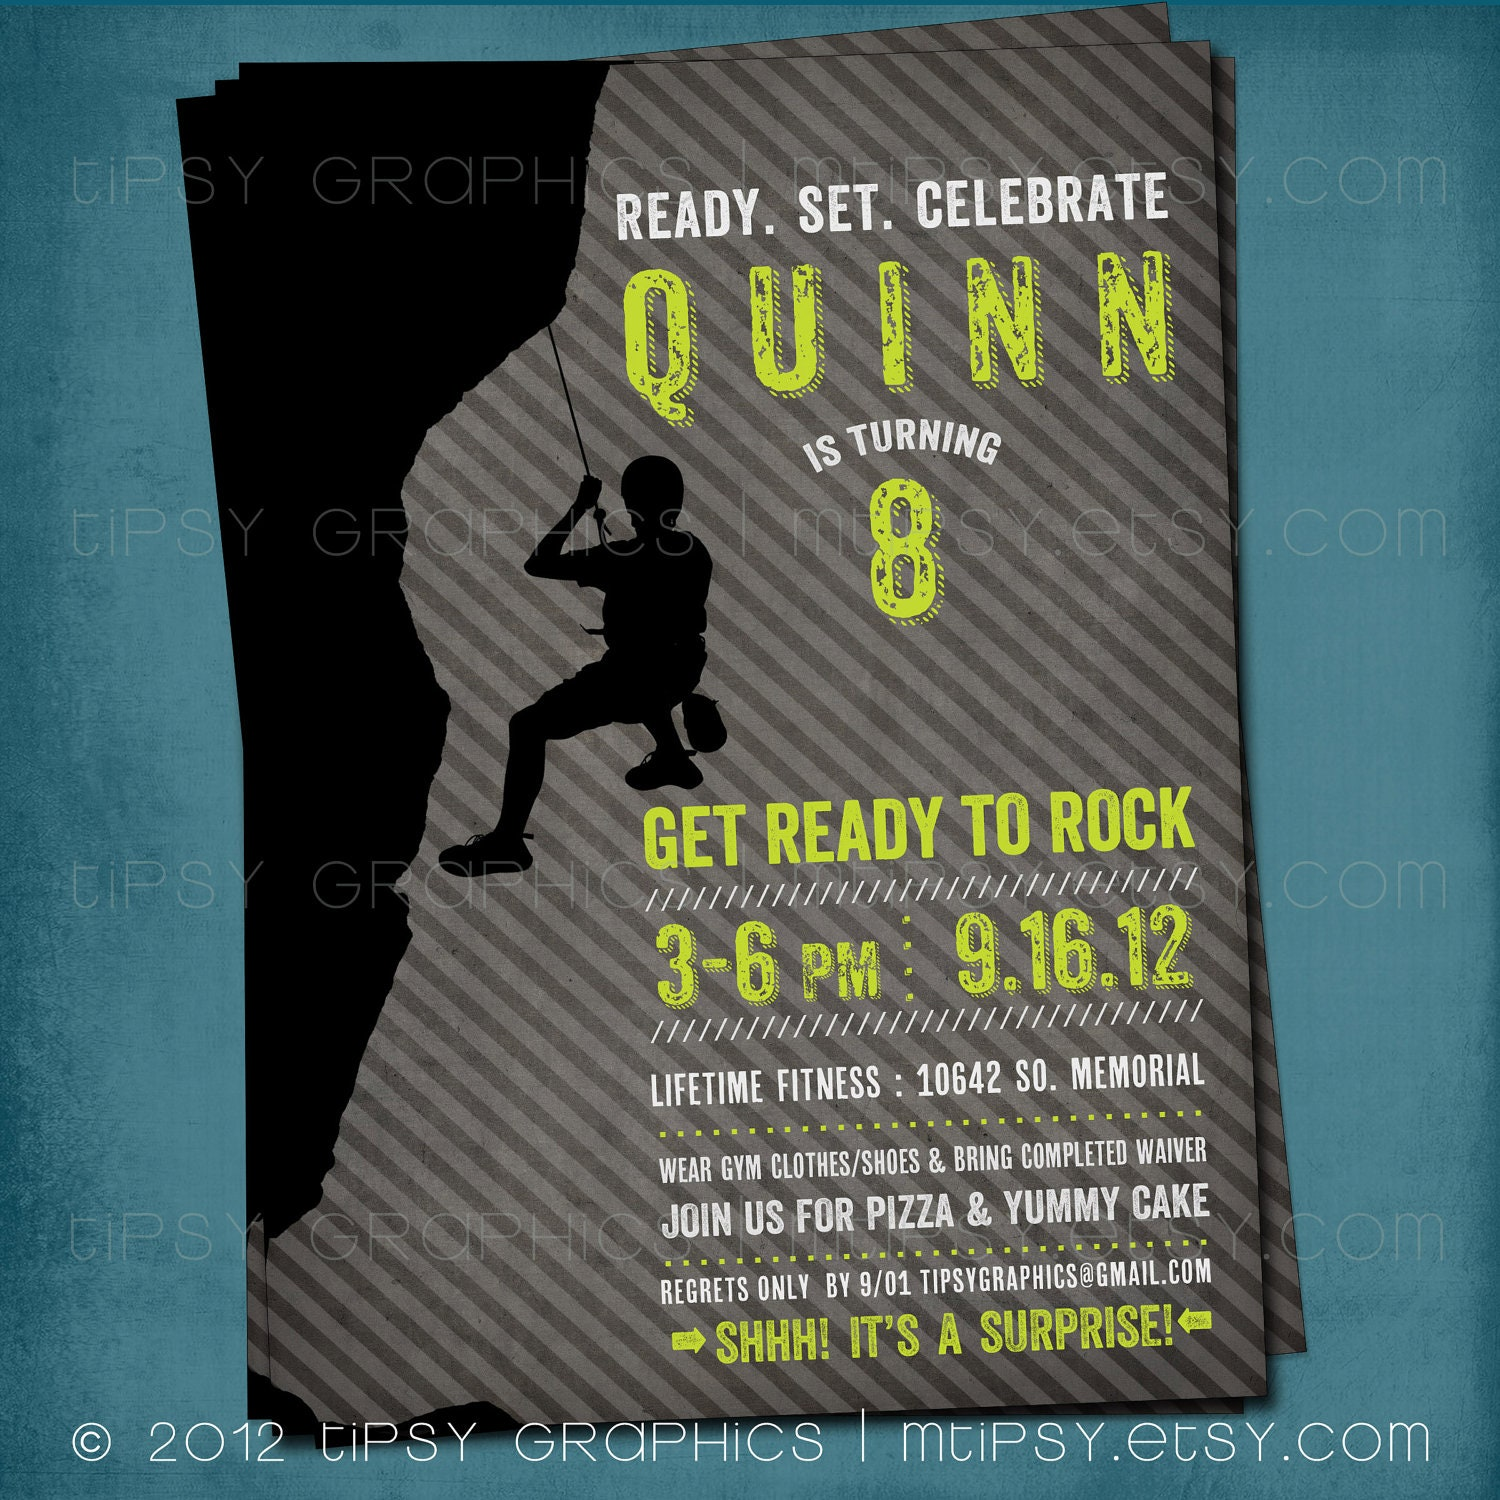 Ready to rock rock climbing birthday party invite for big zoom filmwisefo